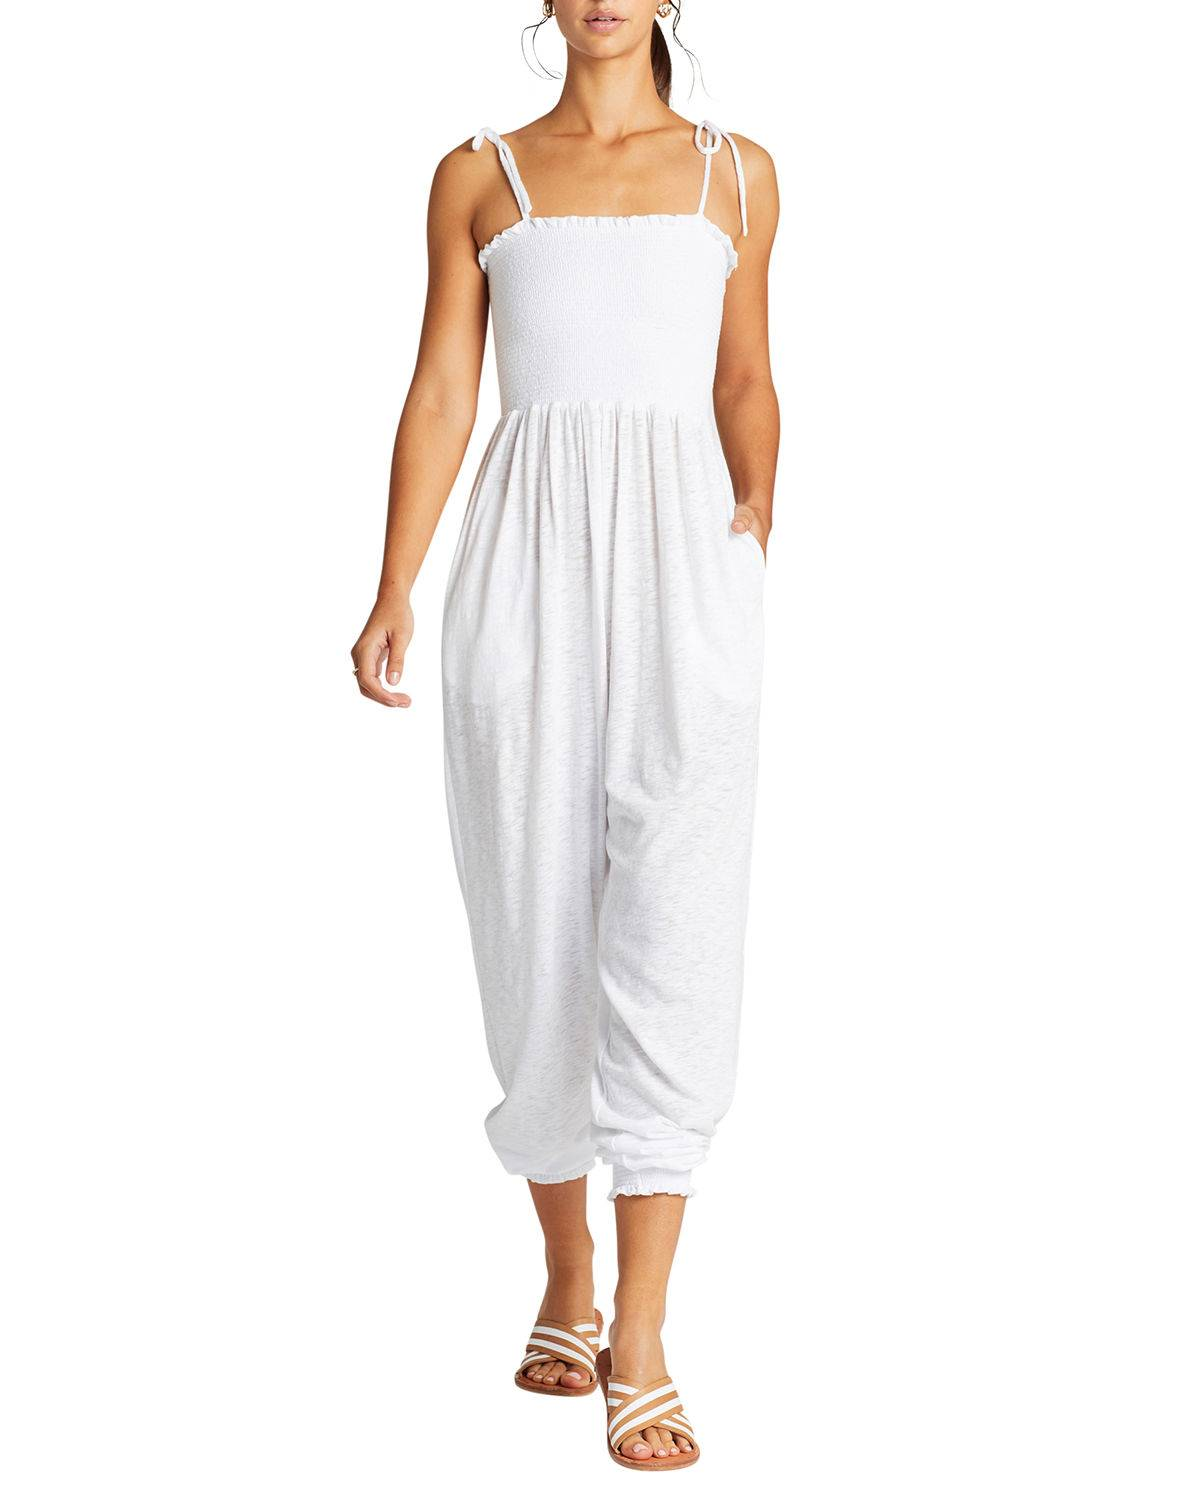 Vitamin A Moonlight Coverup Jumpsuit - Size: Small